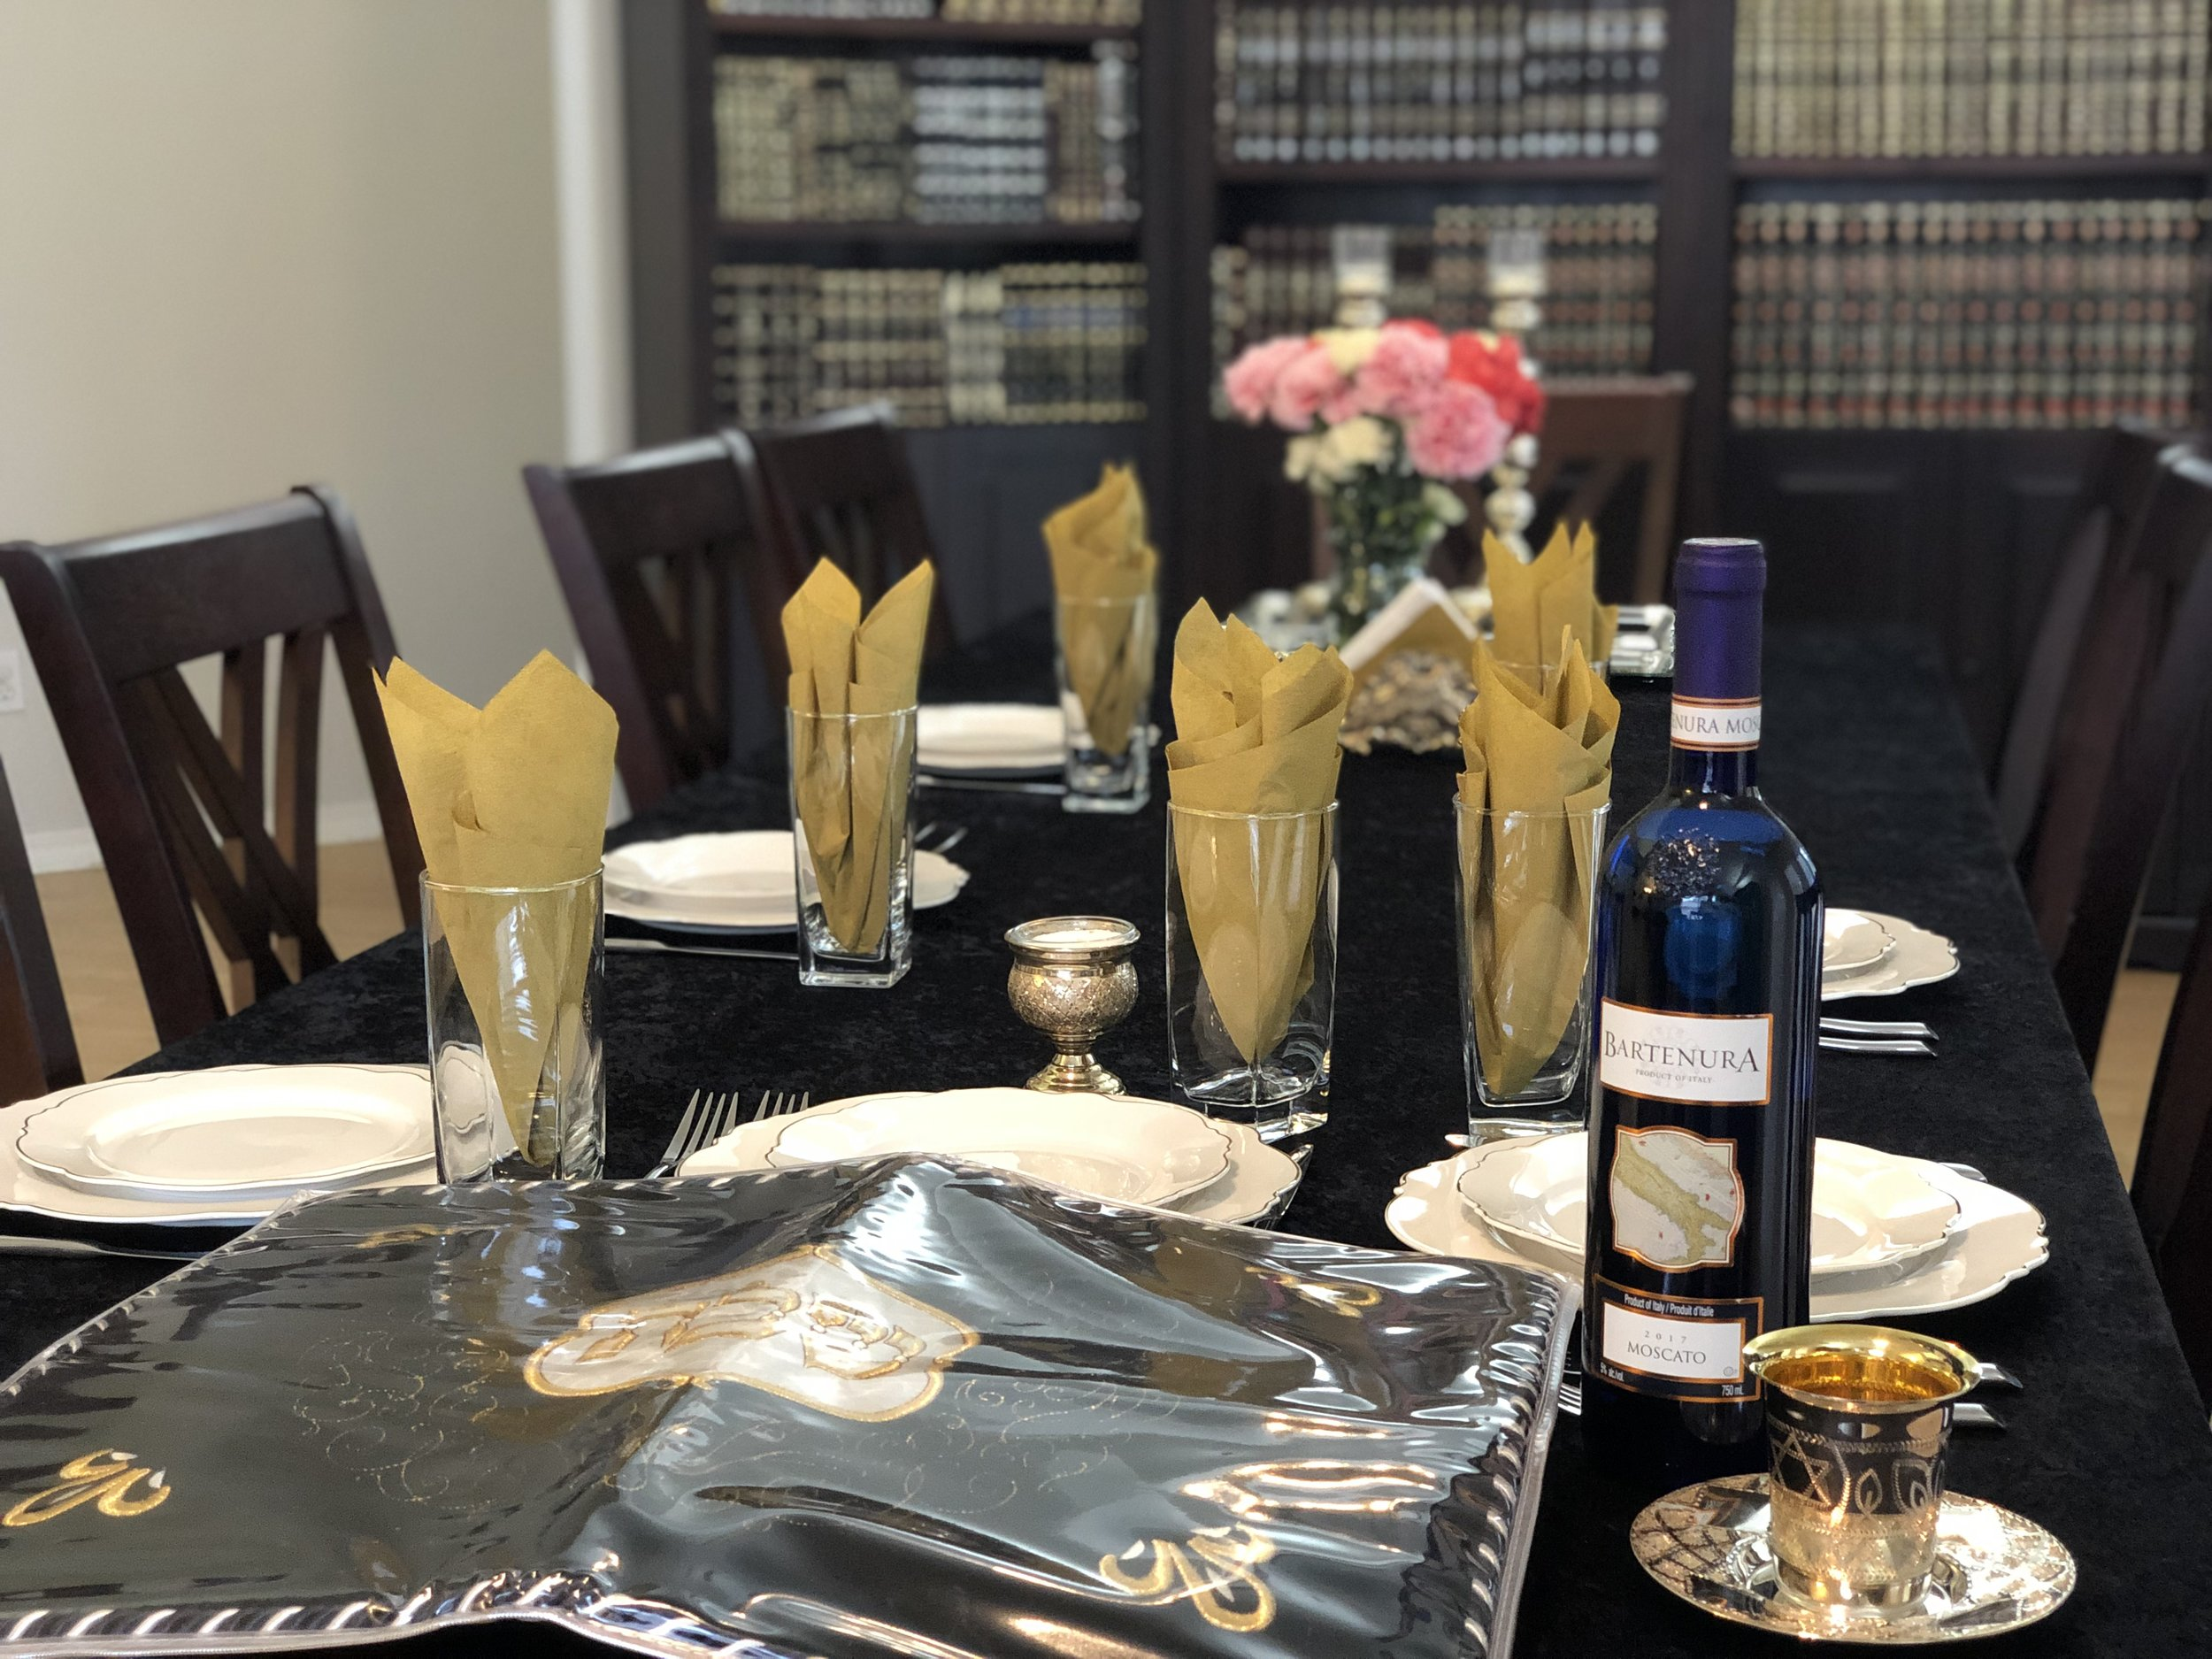 Shabbat Services & Friday Night Live - Every Friday night we have a short Kaballat Shabbat service followed by a tasty Shabbat dinner.Once a month there is a big Shabbat dinner, where many Jews from across town join in for a lively delicious meal.Contact us to find out more details